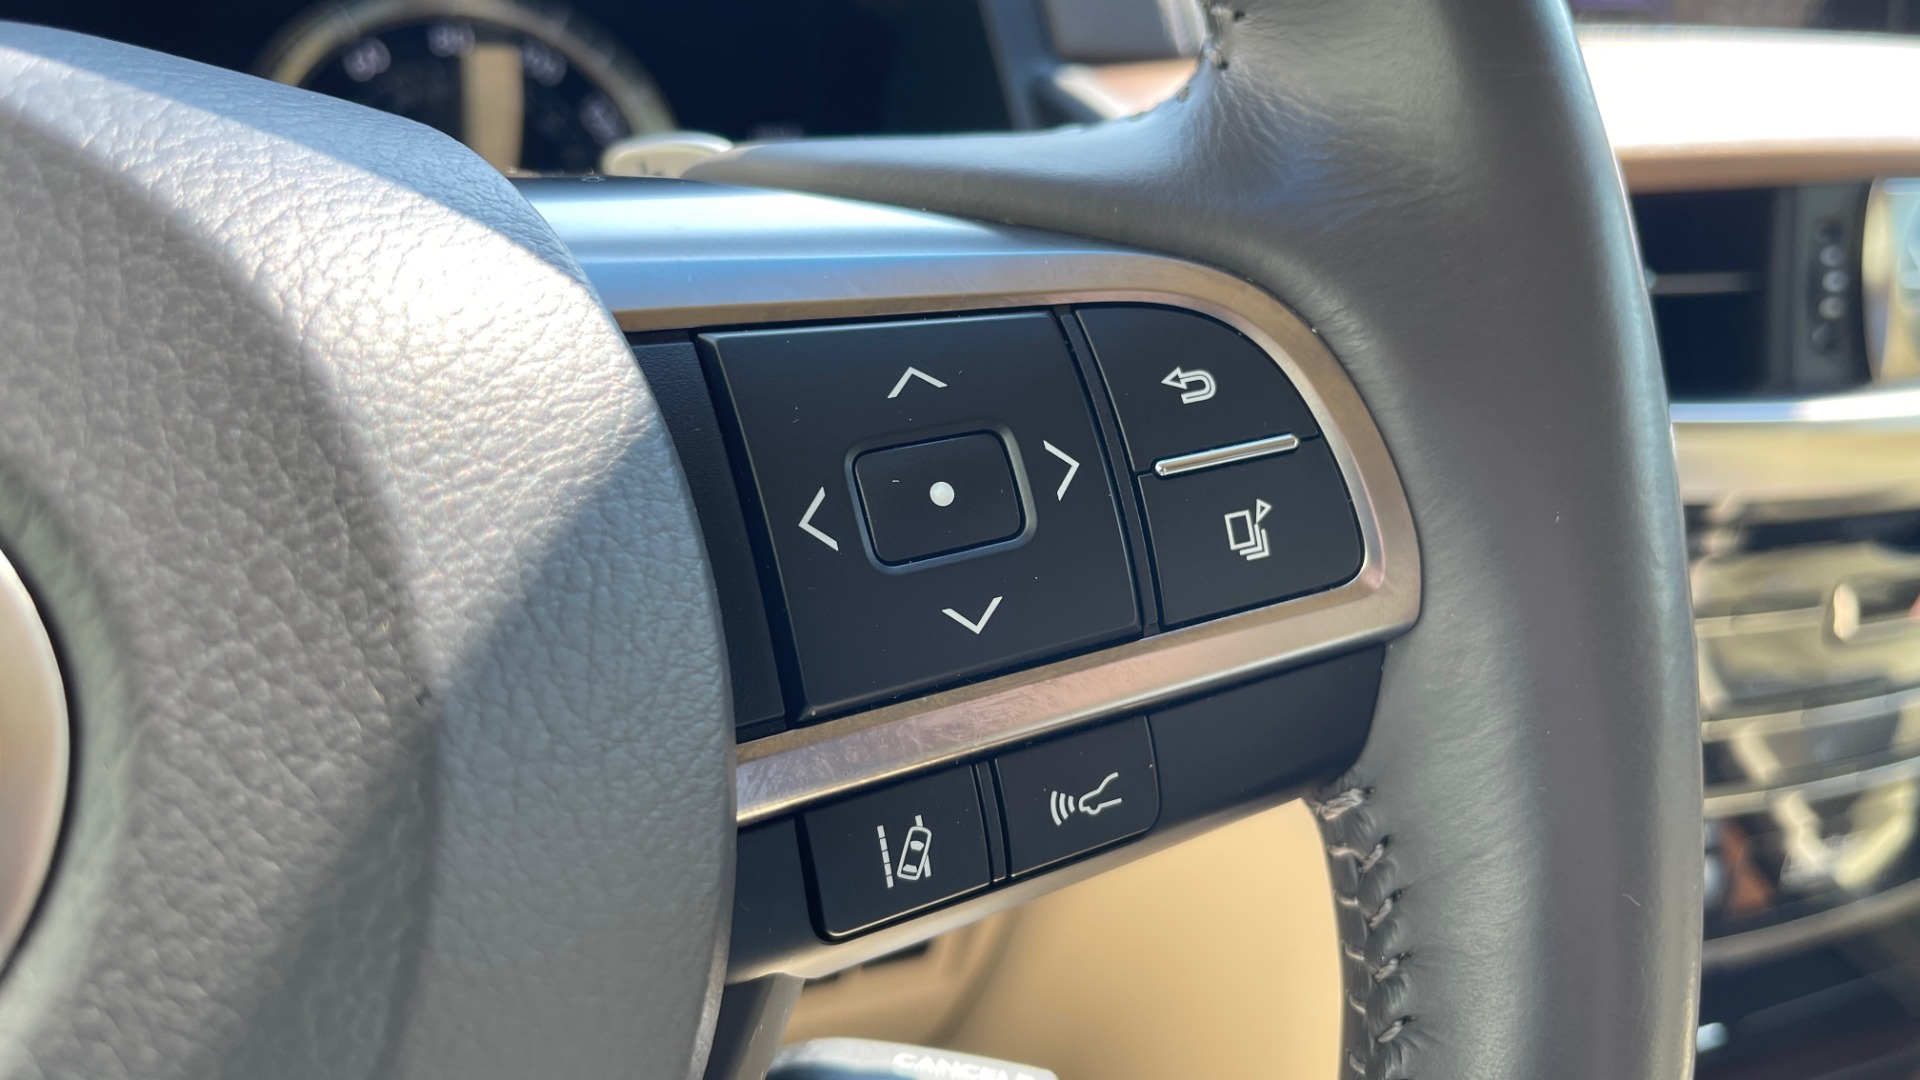 Used 2017 Lexus LX 570 LUXURY / 5.7L V8 / NAV / SUNROOF / 3-ROW / DVD / REARVIEW for sale $63,995 at Formula Imports in Charlotte NC 28227 31